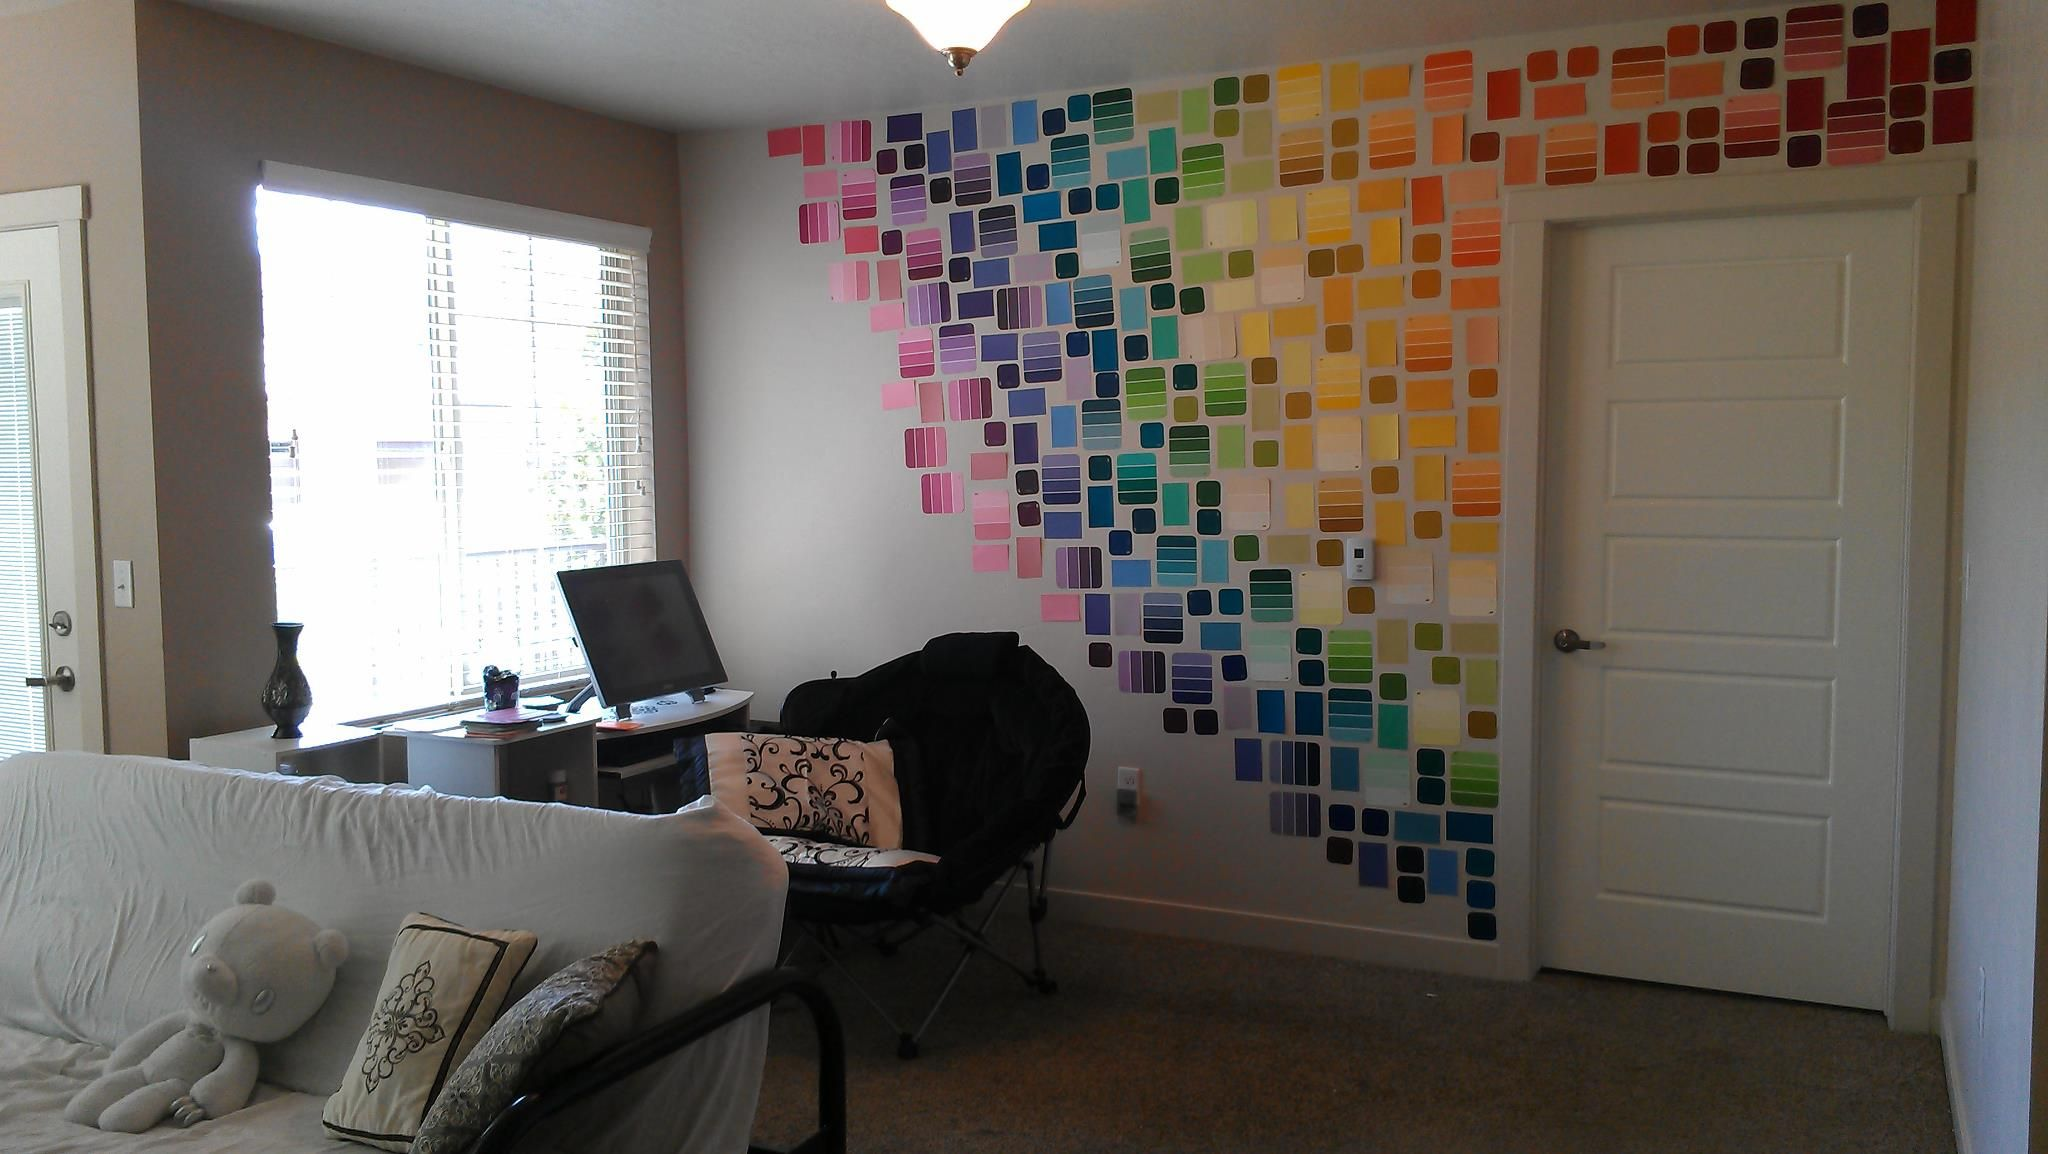 My paint sample wall from Wal Mart and Home Depot is up and looking